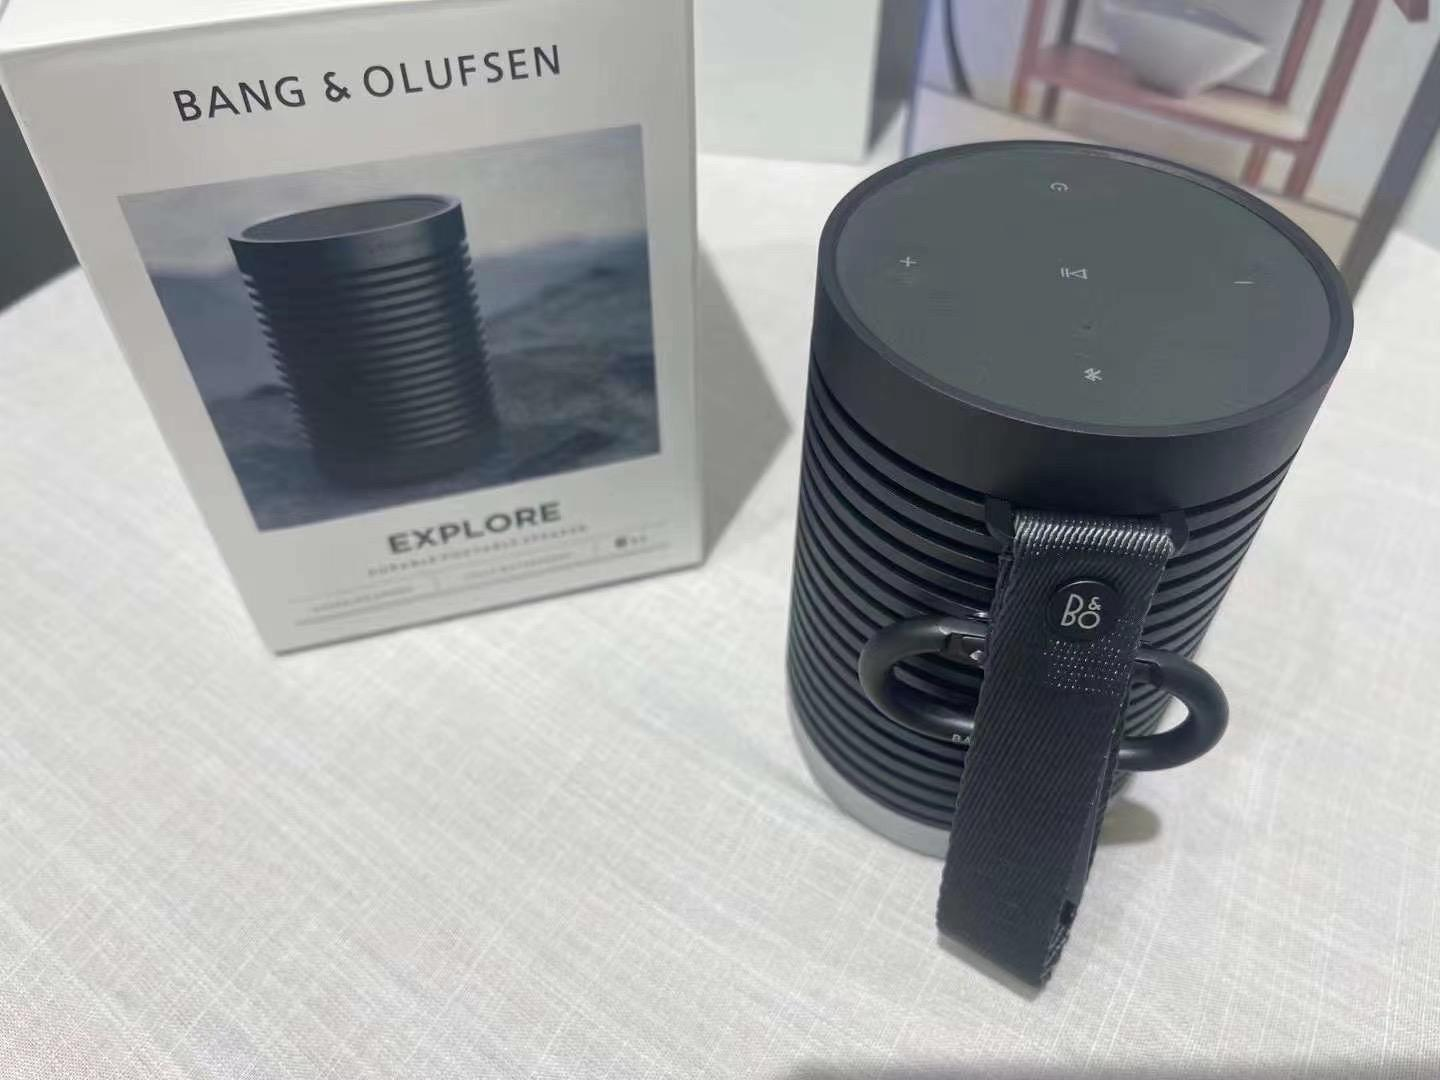 Beosound explore Speakers bang & olufsen Bluetooth Canned Speakers  4